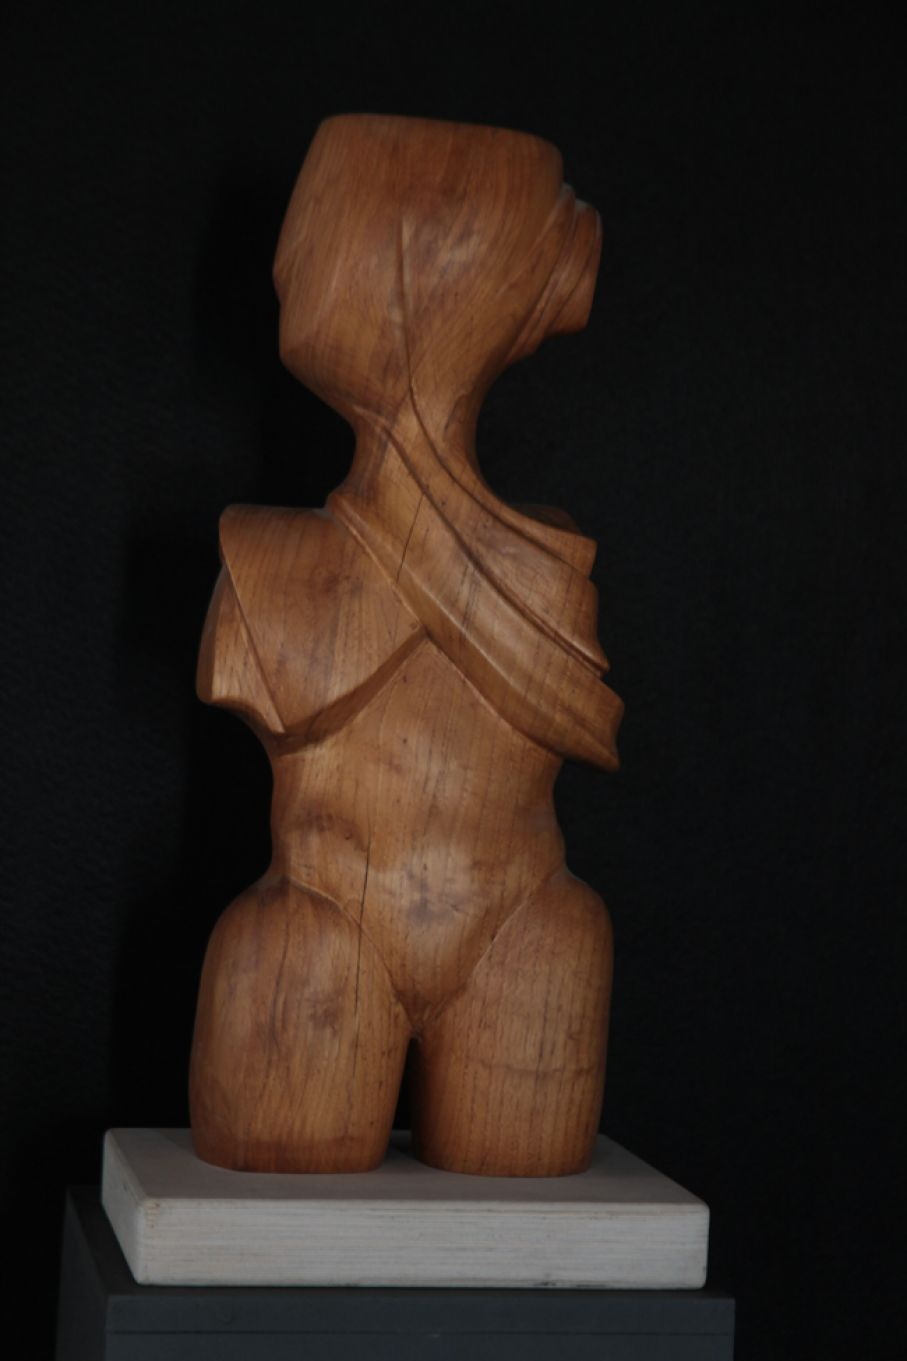 "Original sculpture in wood of Thanos Karonis, completed on August 2013, within Myrü Antiques House premises, in Souroti, Thessaloniki, GREECE, as part of the Greek Marble Initiative, belonging in a series called ""Idols"". Dimensions: 56 X 28 X 22 cm (with its base)."